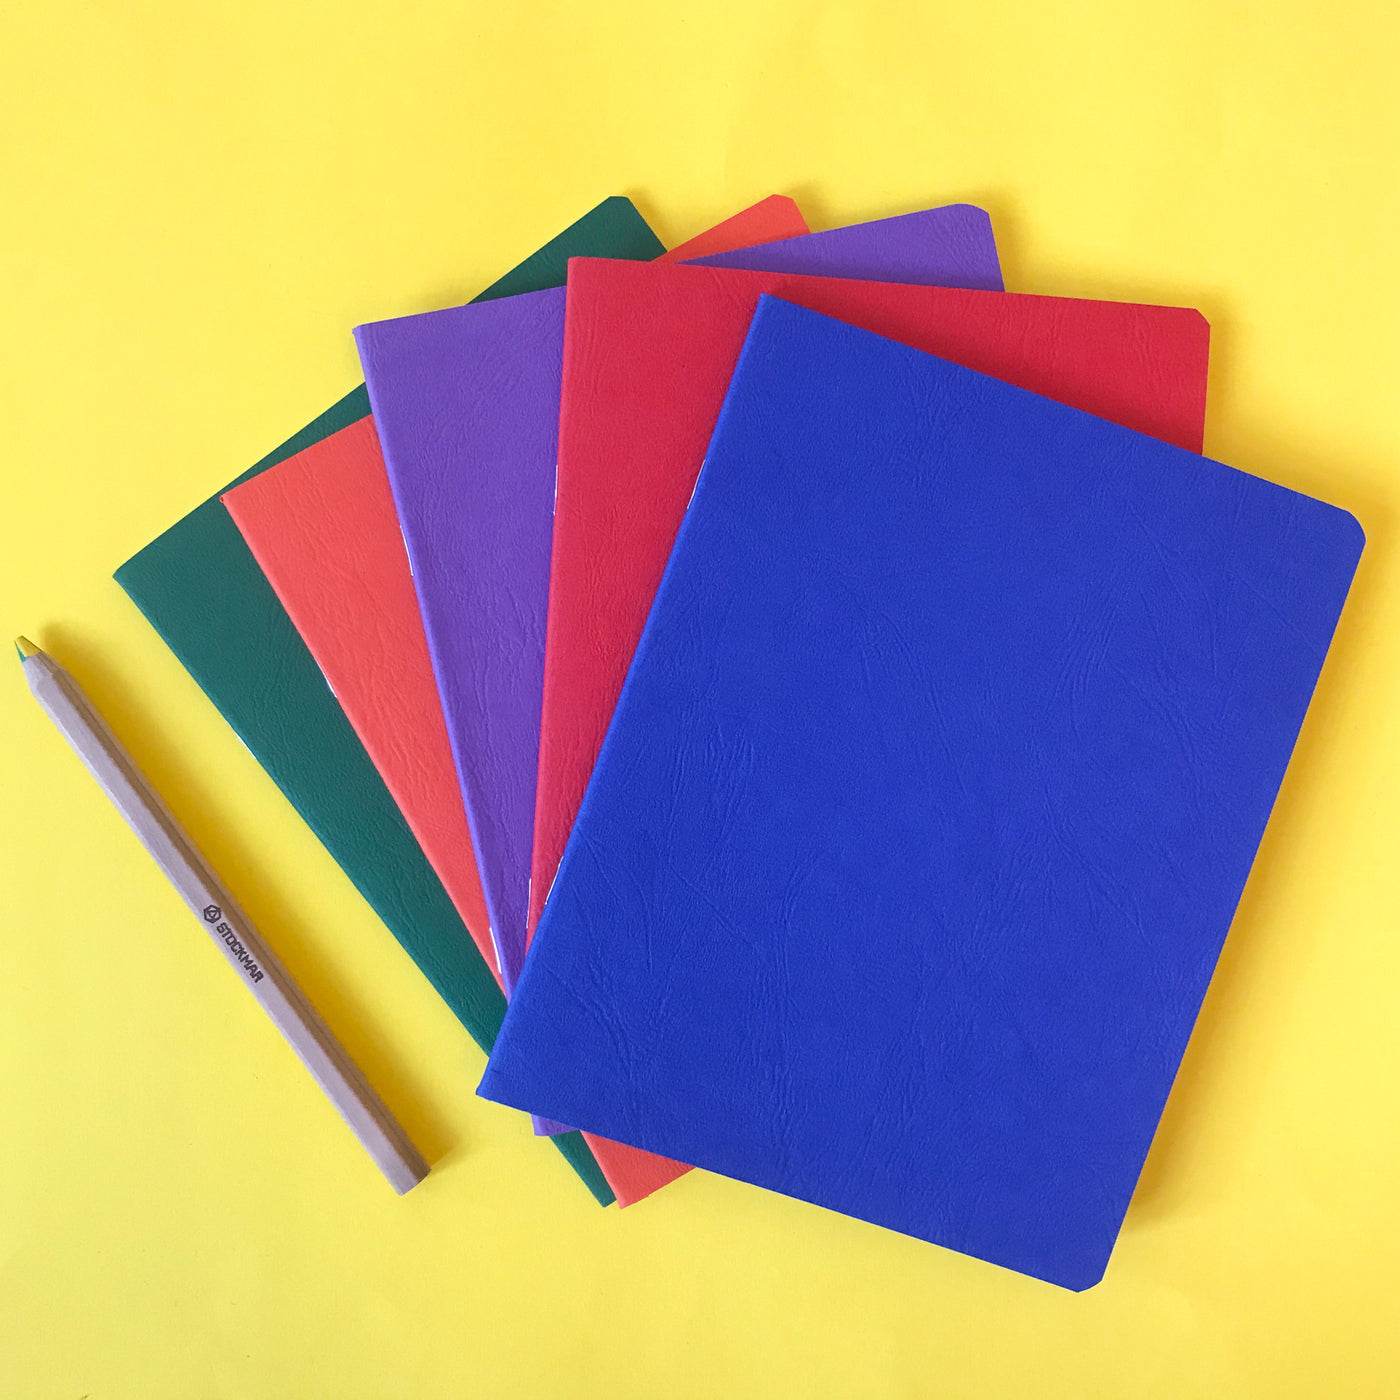 Blank sketch books to write, draw or collage in.